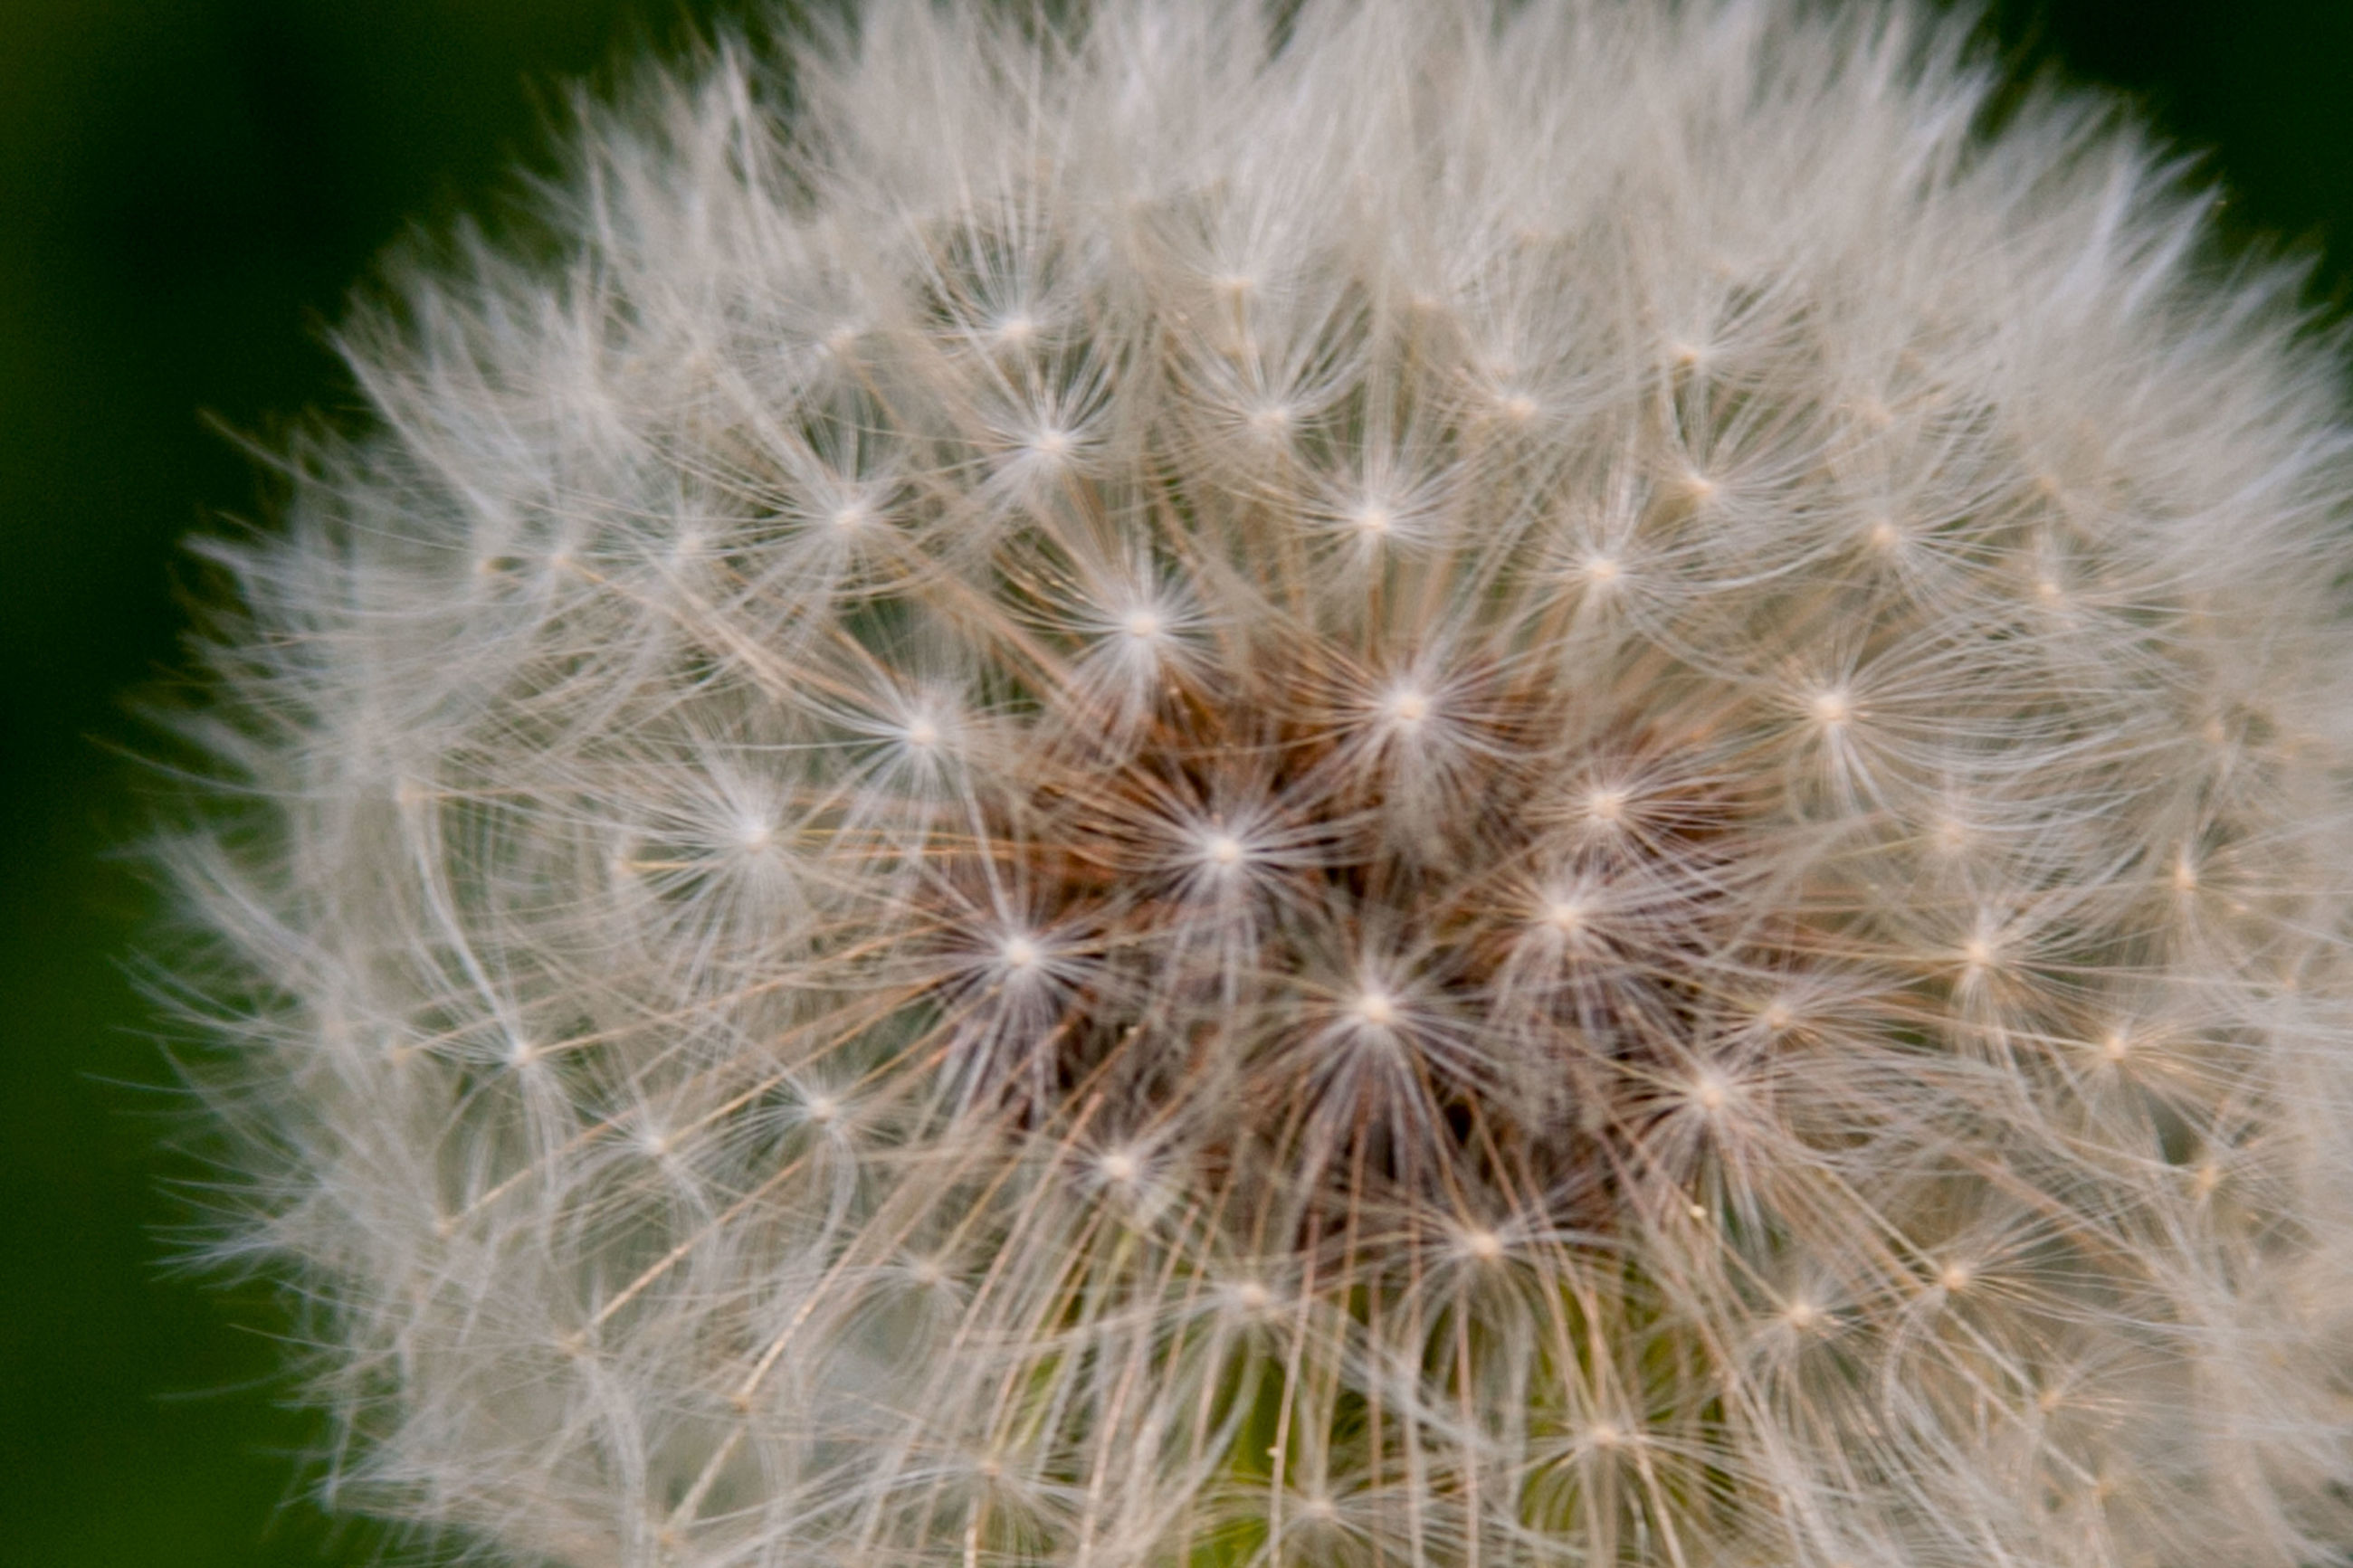 flower, vulnerability, fragility, flowering plant, dandelion, close-up, beauty in nature, plant, inflorescence, growth, no people, nature, flower head, freshness, softness, white color, dandelion seed, selective focus, focus on foreground